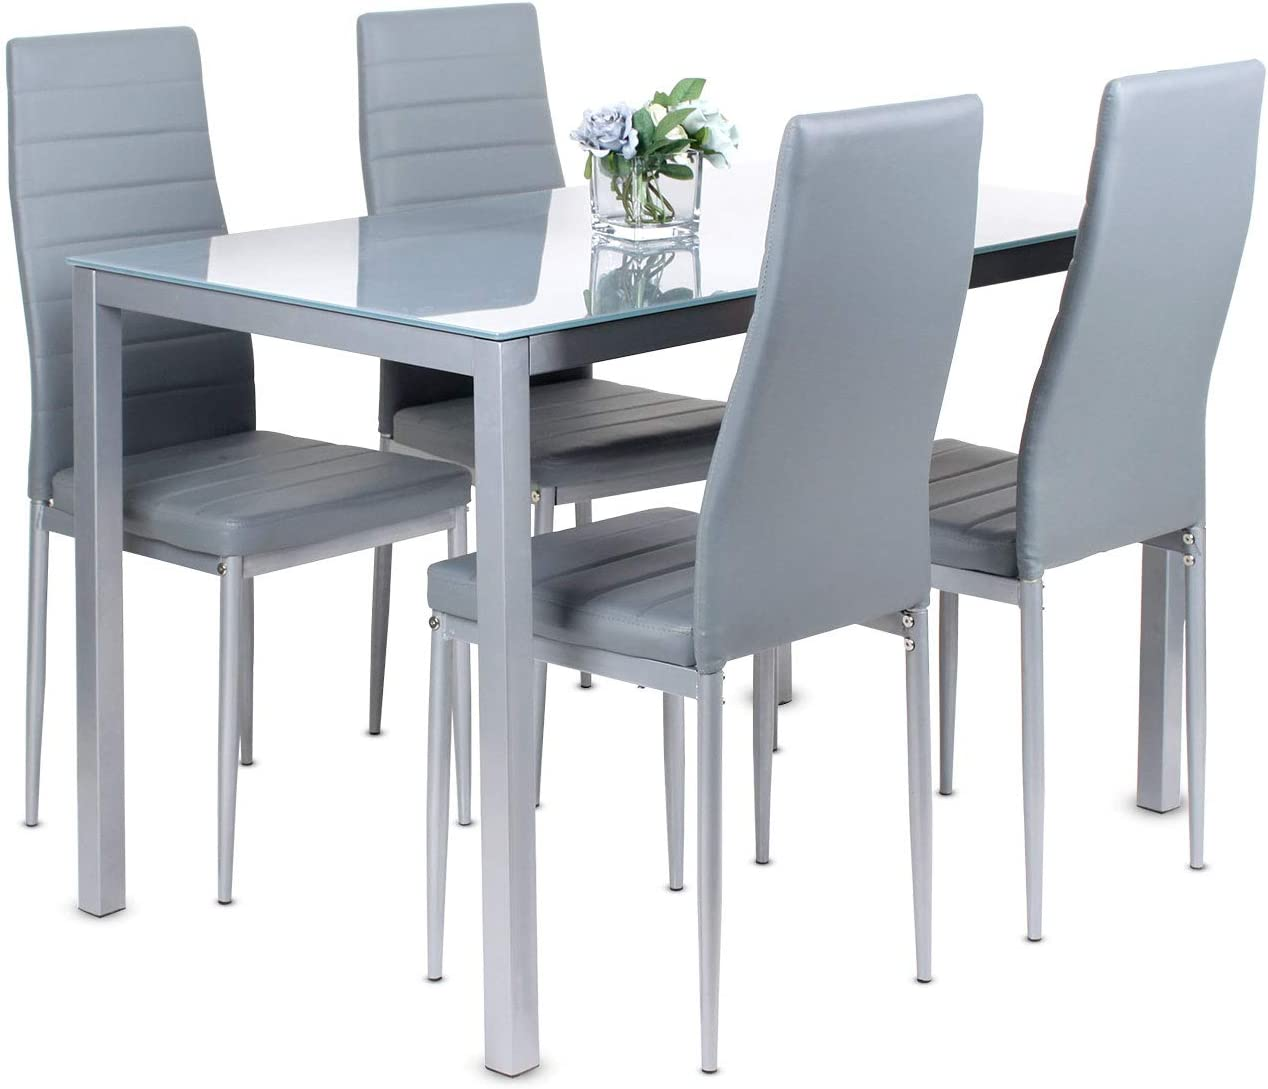 jeffordoutlet Dining Table and Chairs Set of 9 Leather Kitchen Chairs with  Tempered Glass Table,Compact Grey Dining Room Furniture Set